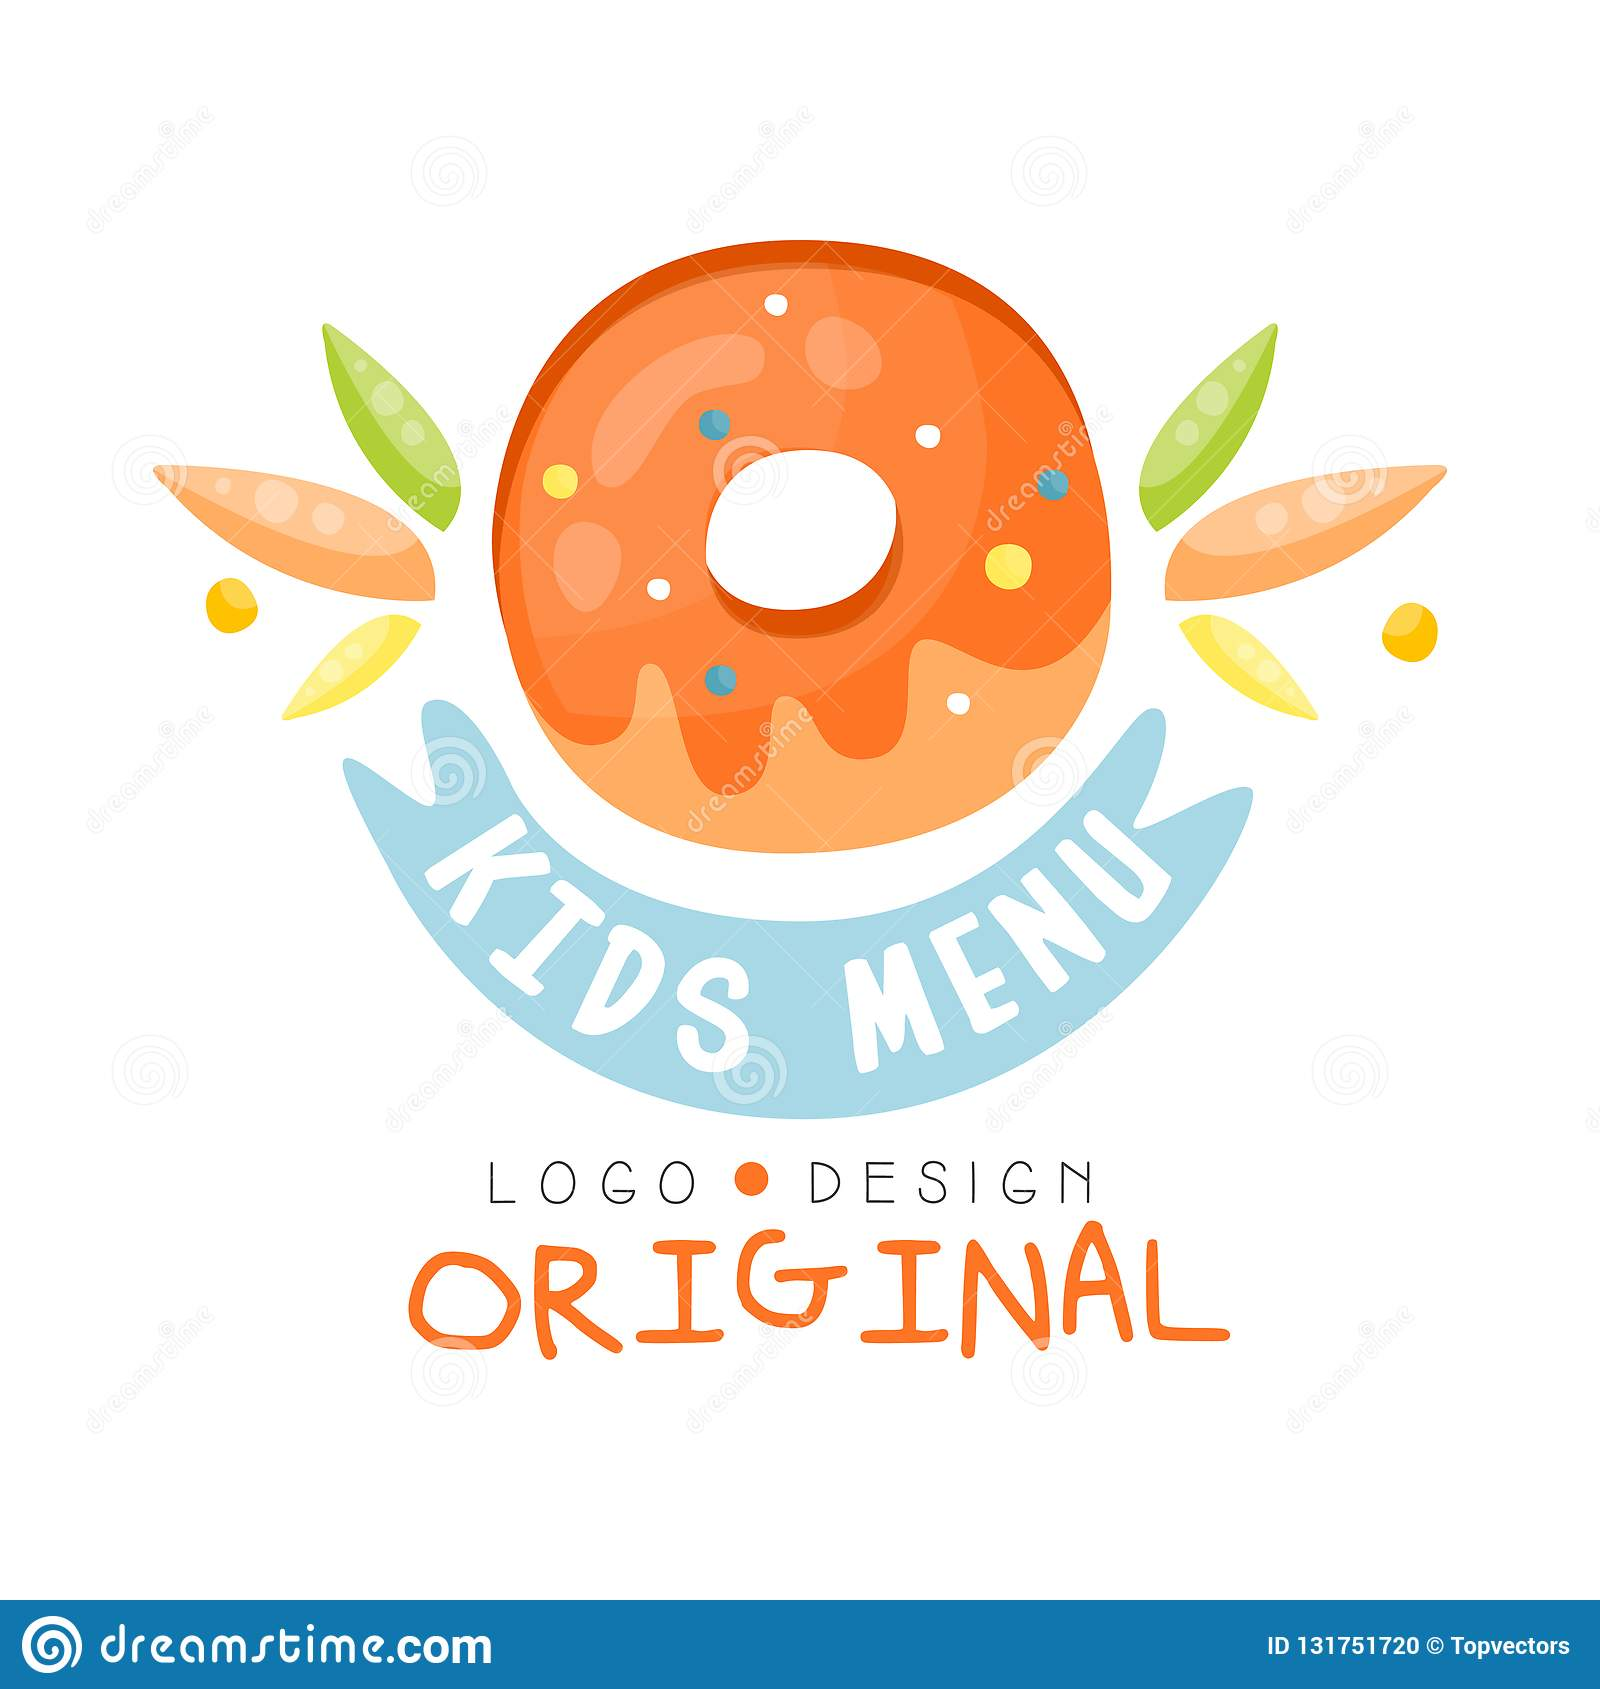 Donut Template | Kids Menu Logo Original Healthy Organic Food Colorful Creative